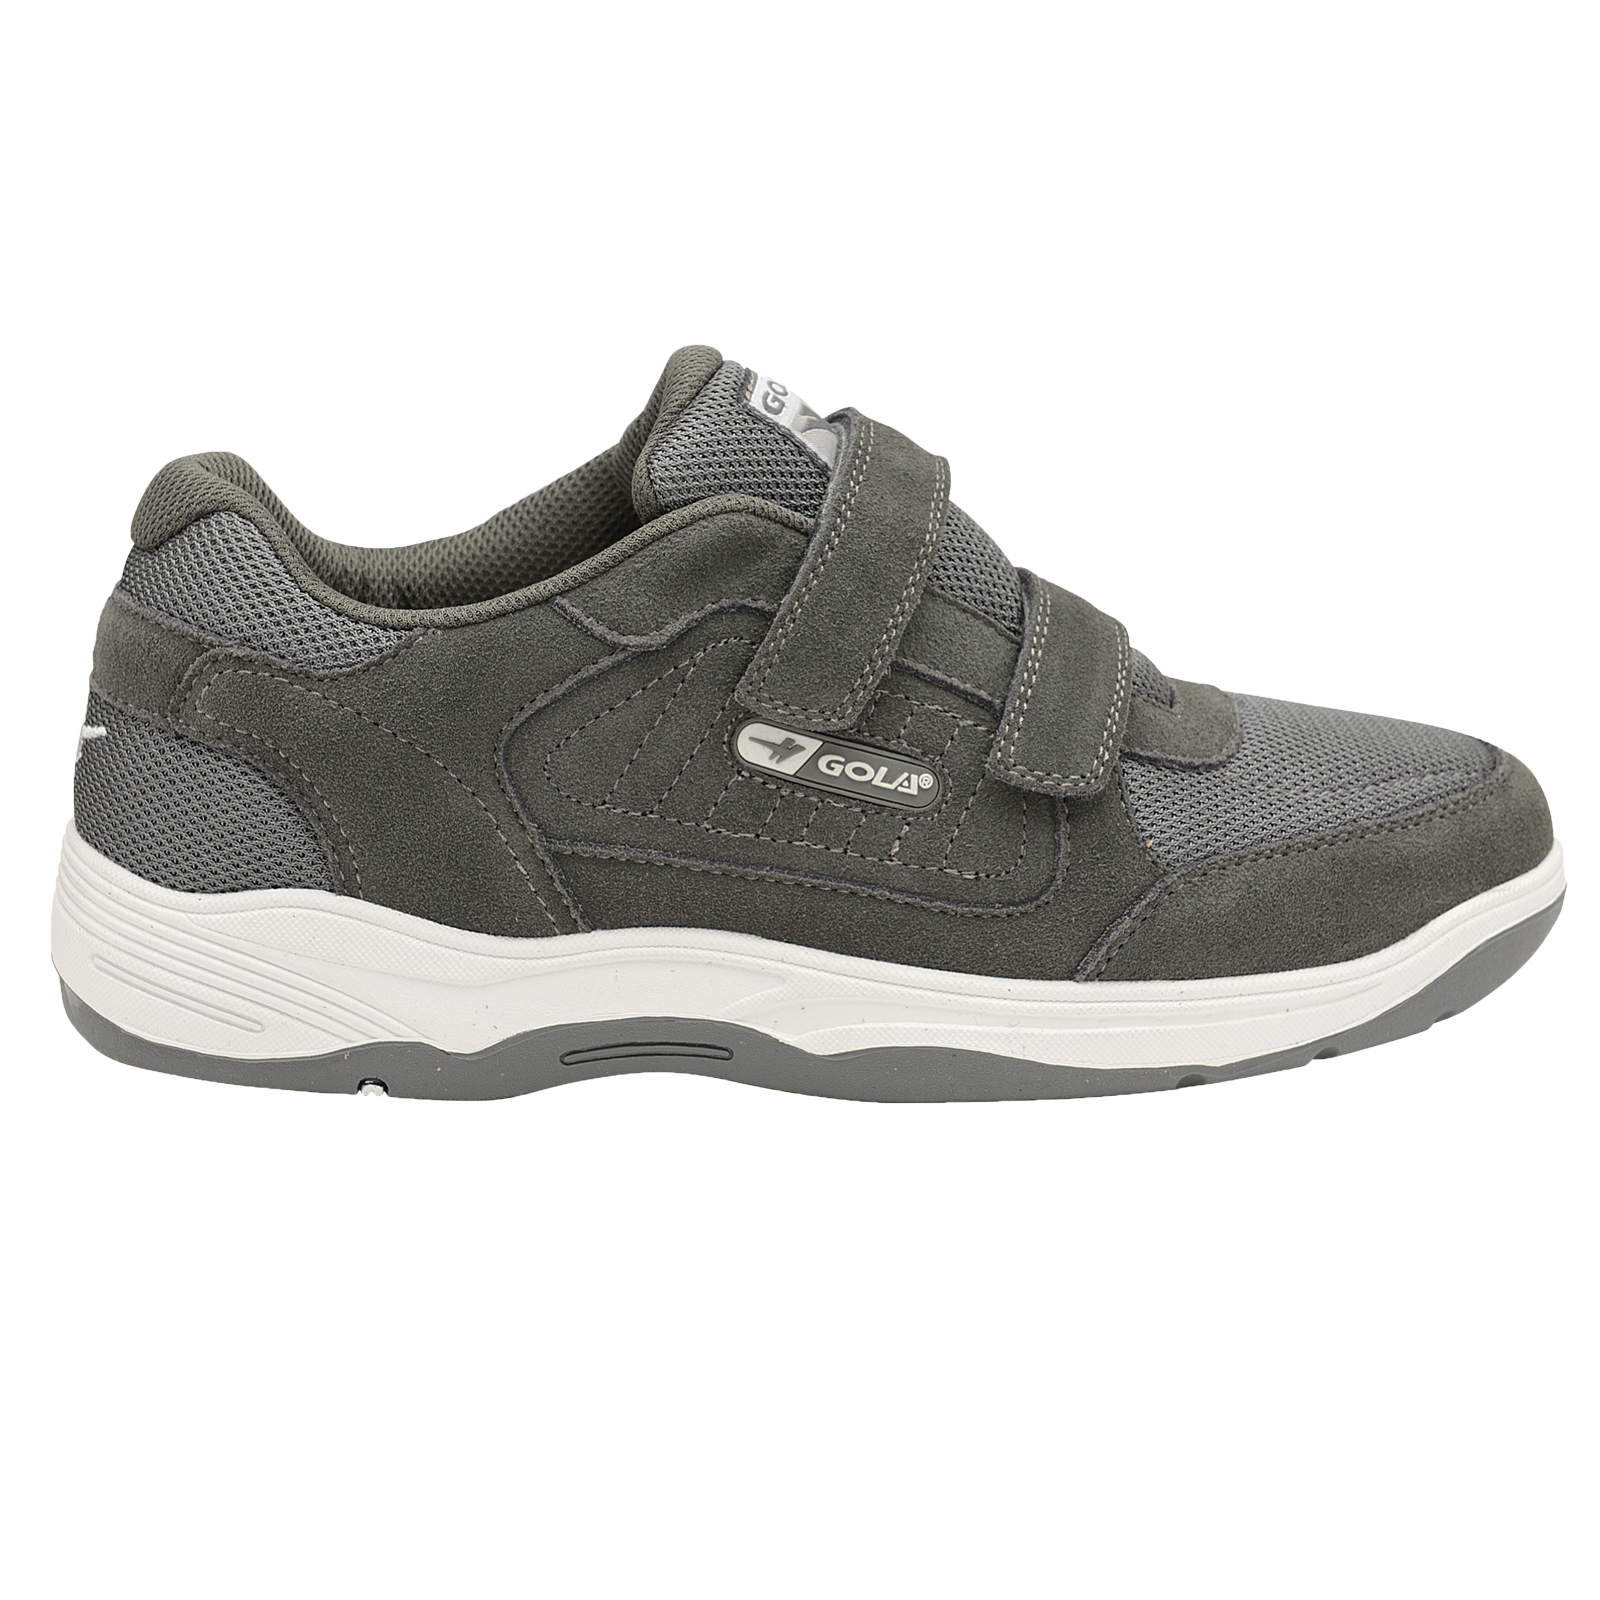 Gola-Belmont-Wide-Fit-EE-Mens-Leather-Or-Suede-Trainers-Size-7-15-UK-Touch-Strap thumbnail 9